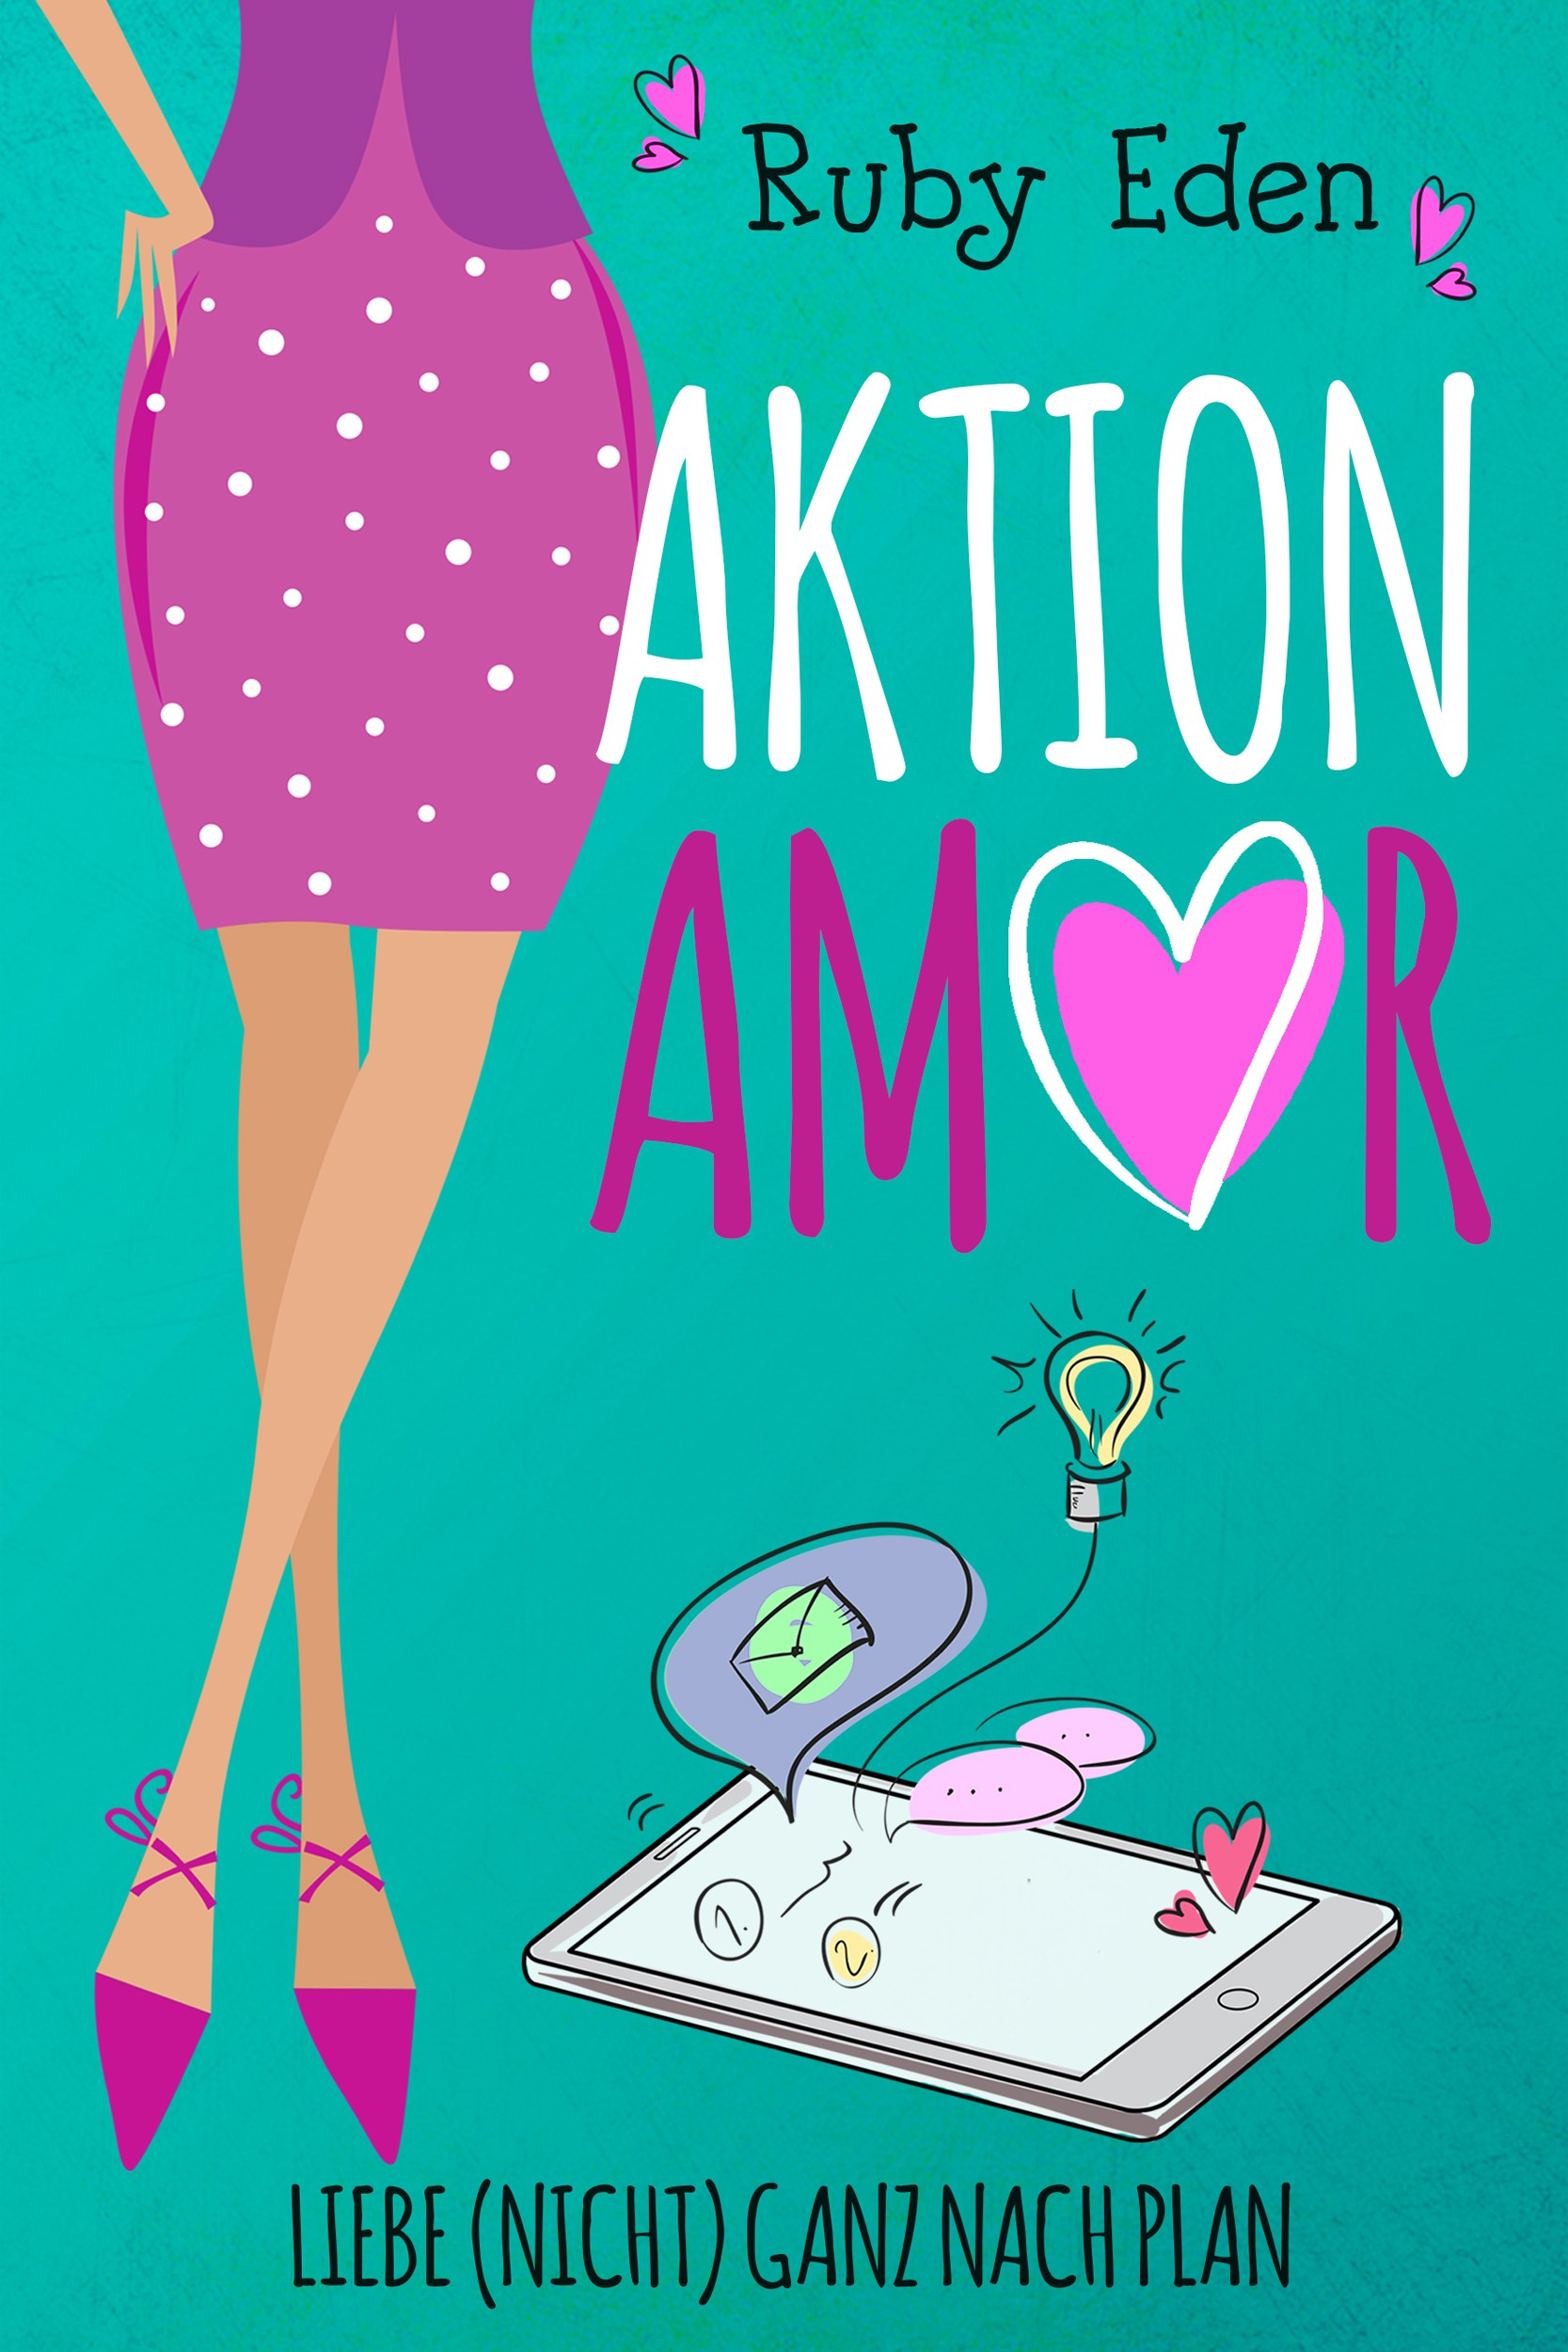 Romantic chick lit ebook cover - Looking for designs!